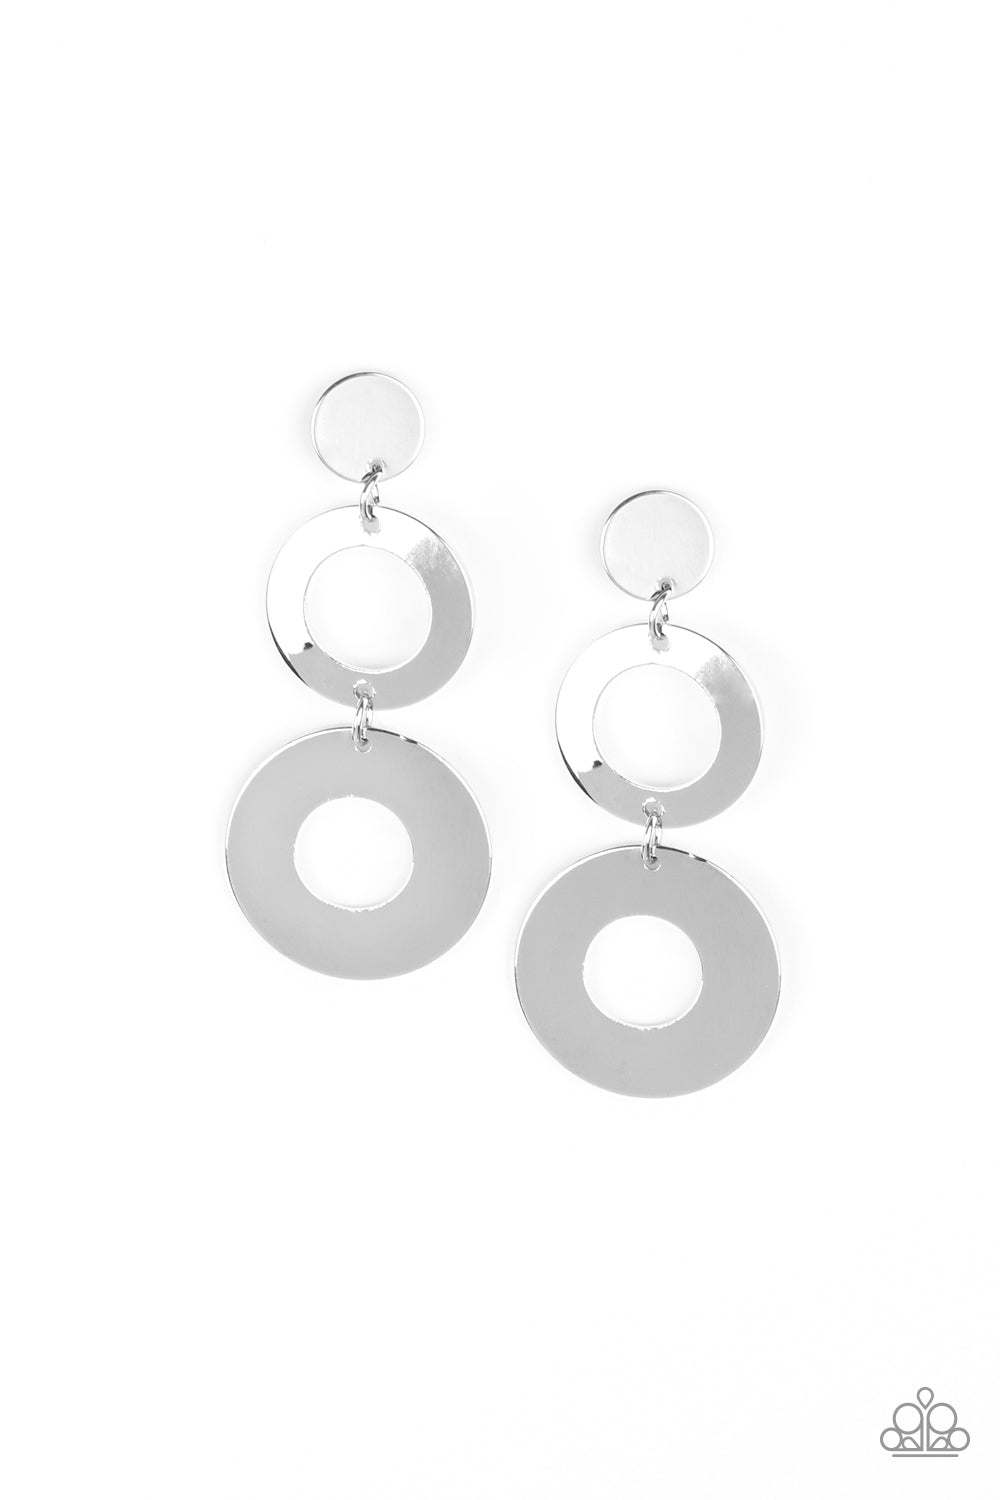 Paparazzi Accessories Pop Idol - Silver Earring - Be Adored Jewelry